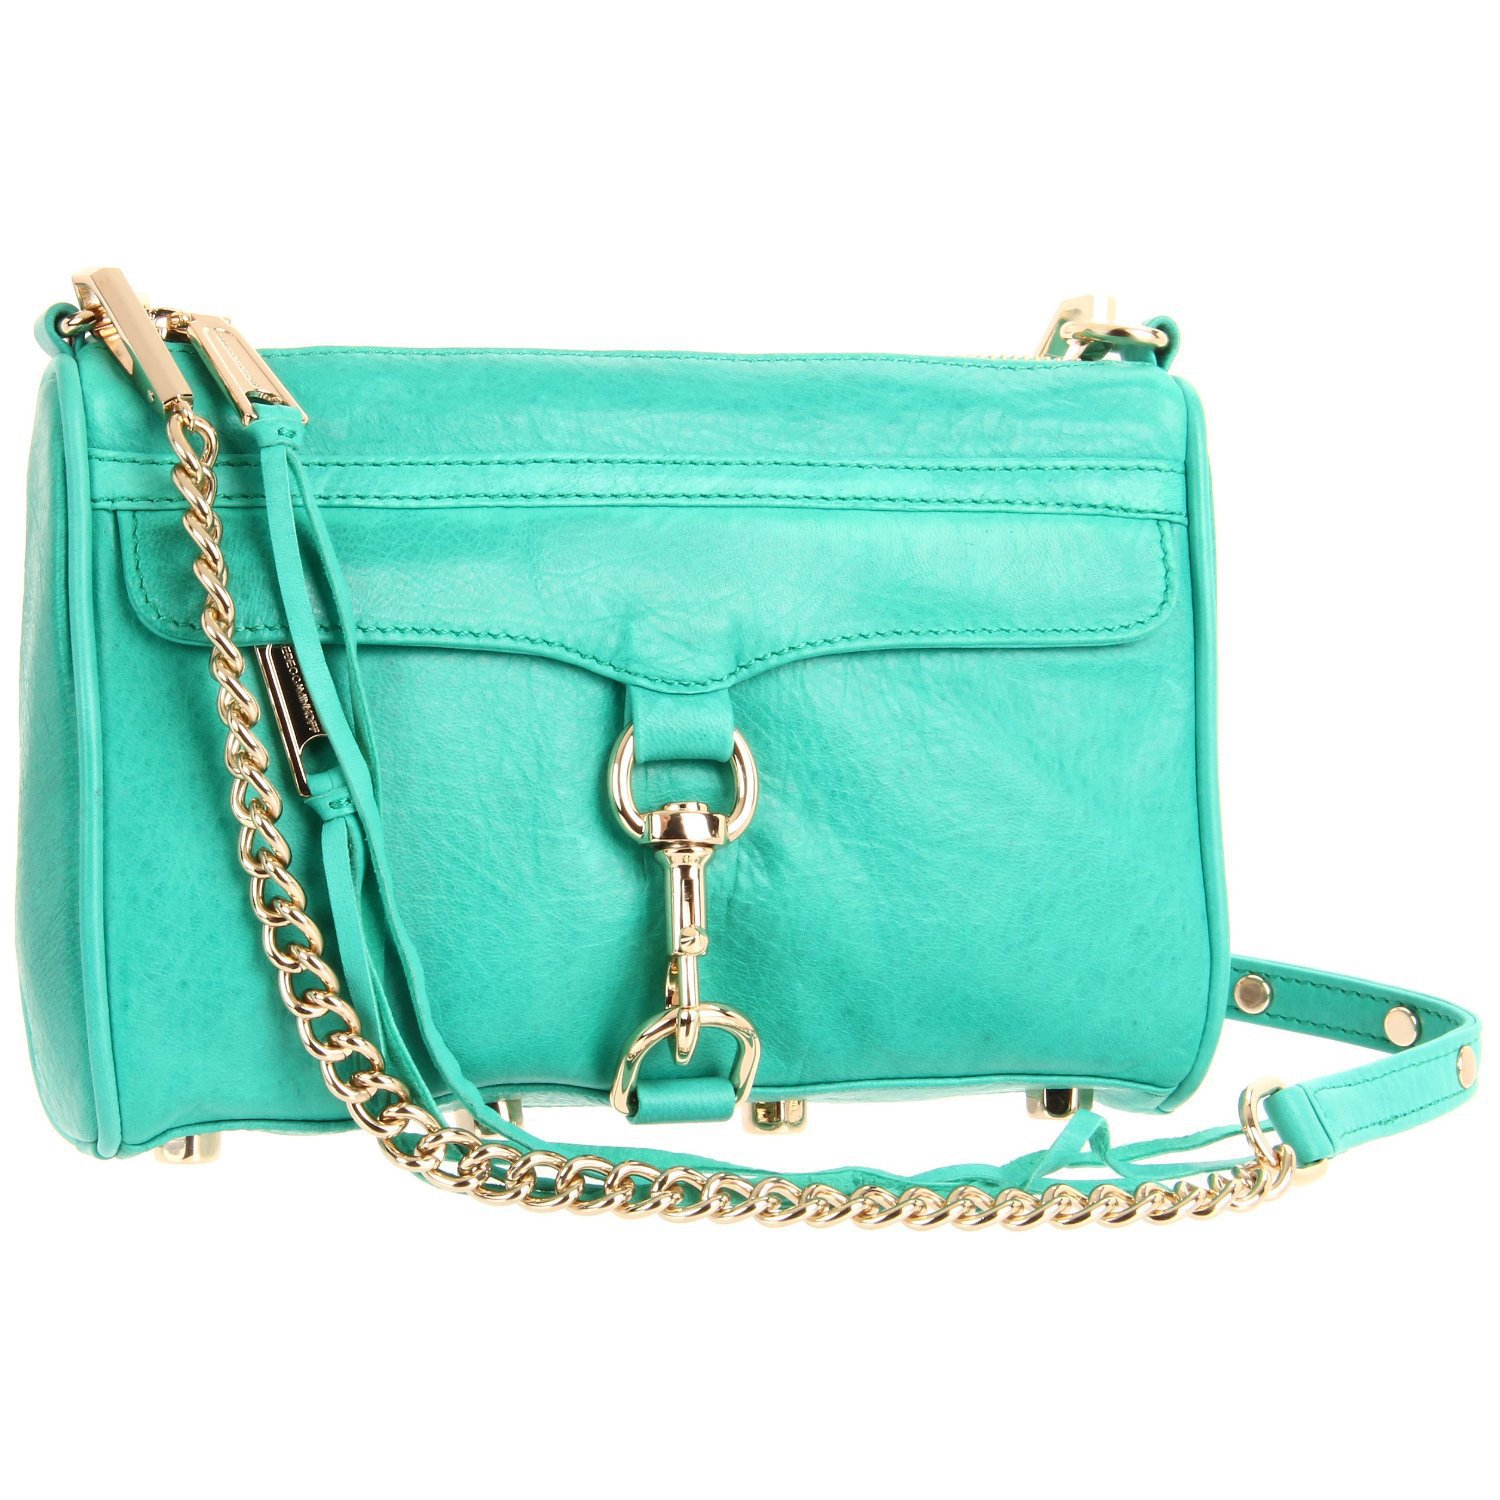 Rebecca Minkoff Mini Mac H652I01C Clutch - designer shoes, handbags, jewelry, watches, and fashion accessories | endless.com